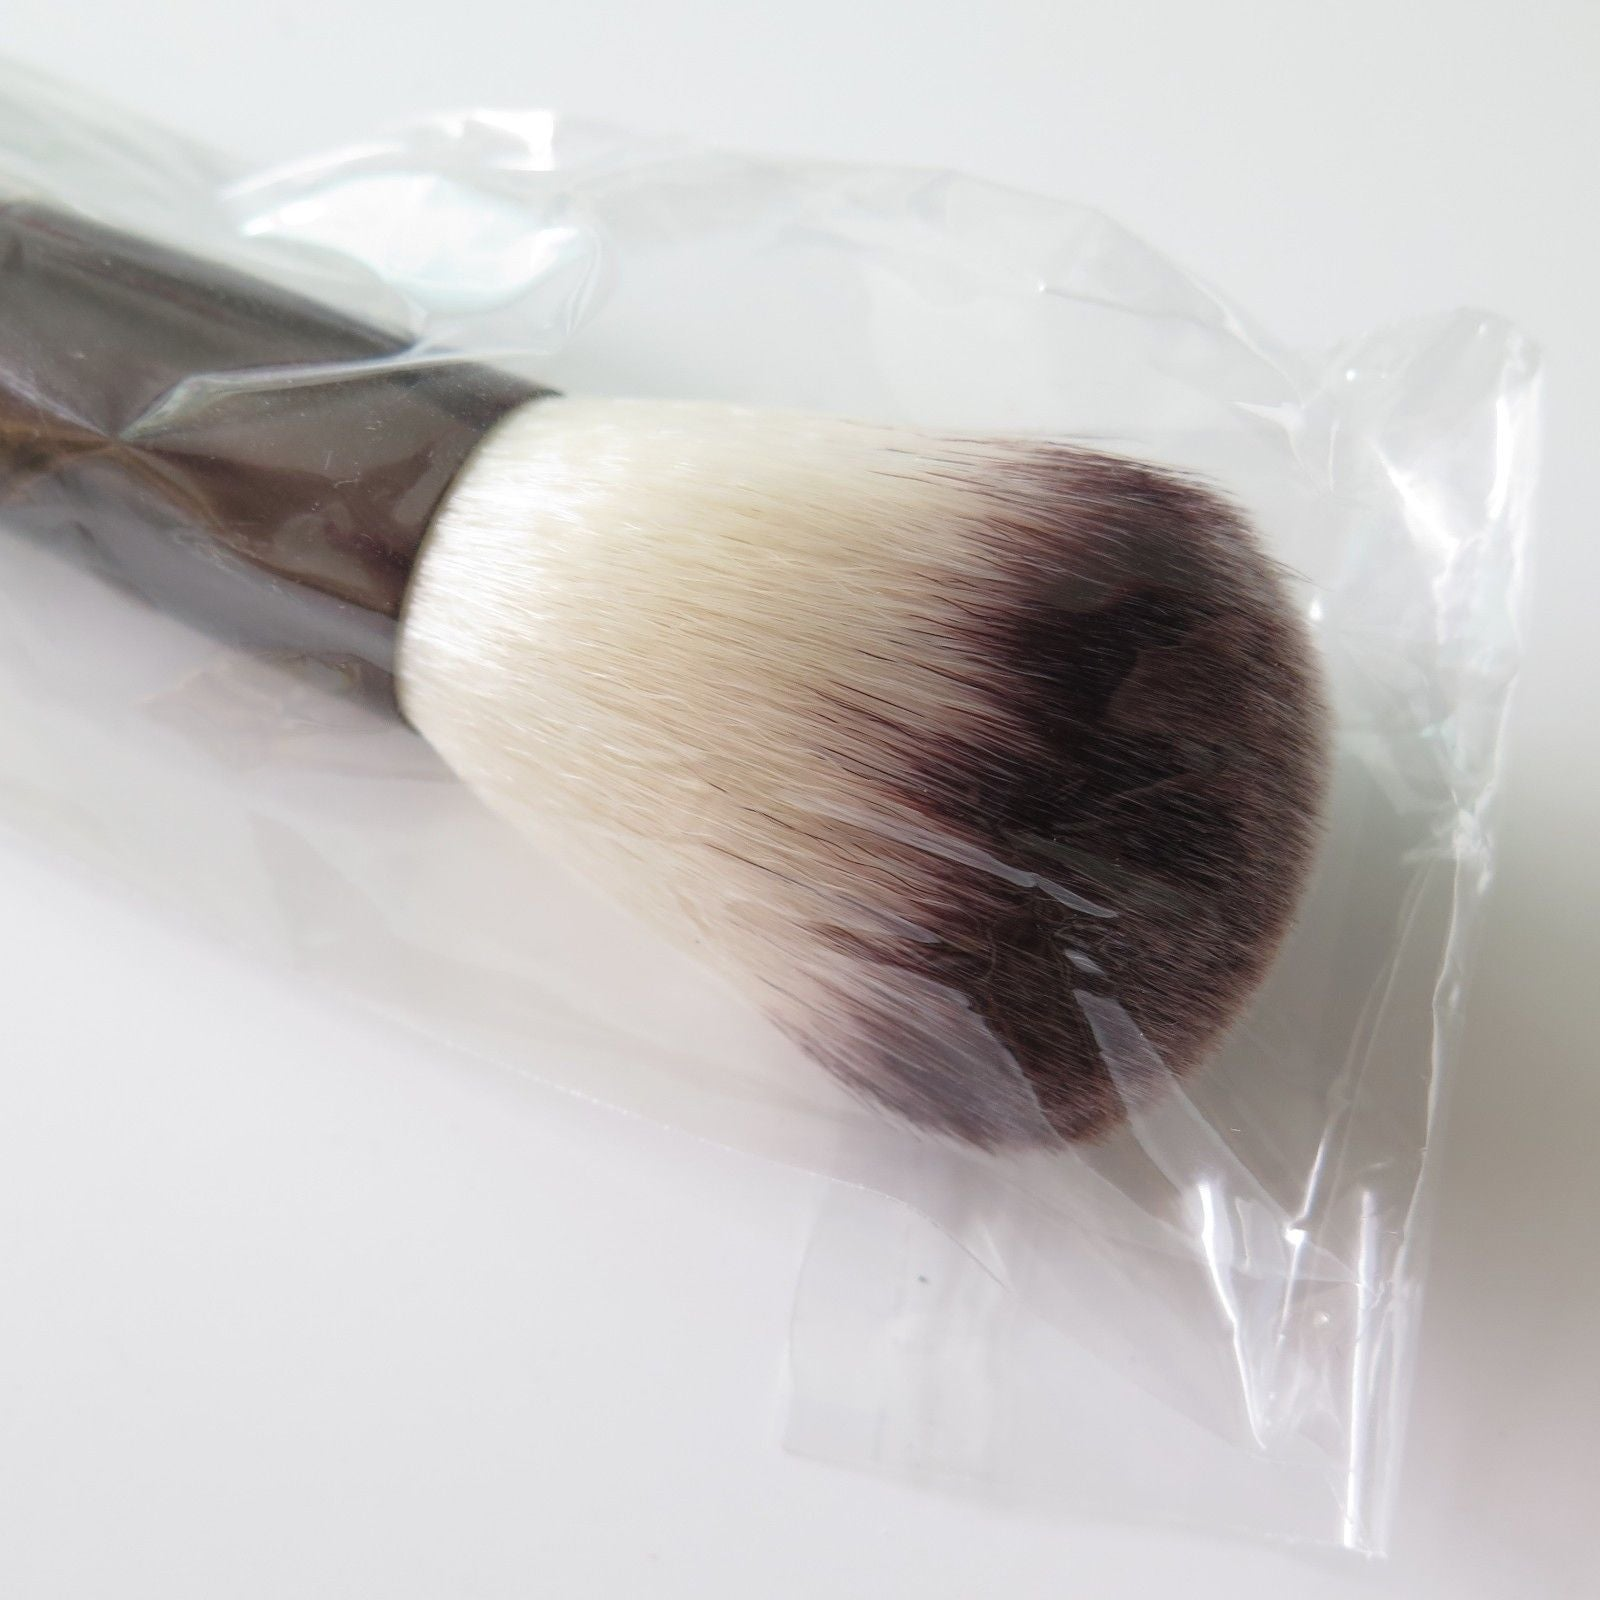 HOURGLASS Powder Brush #1